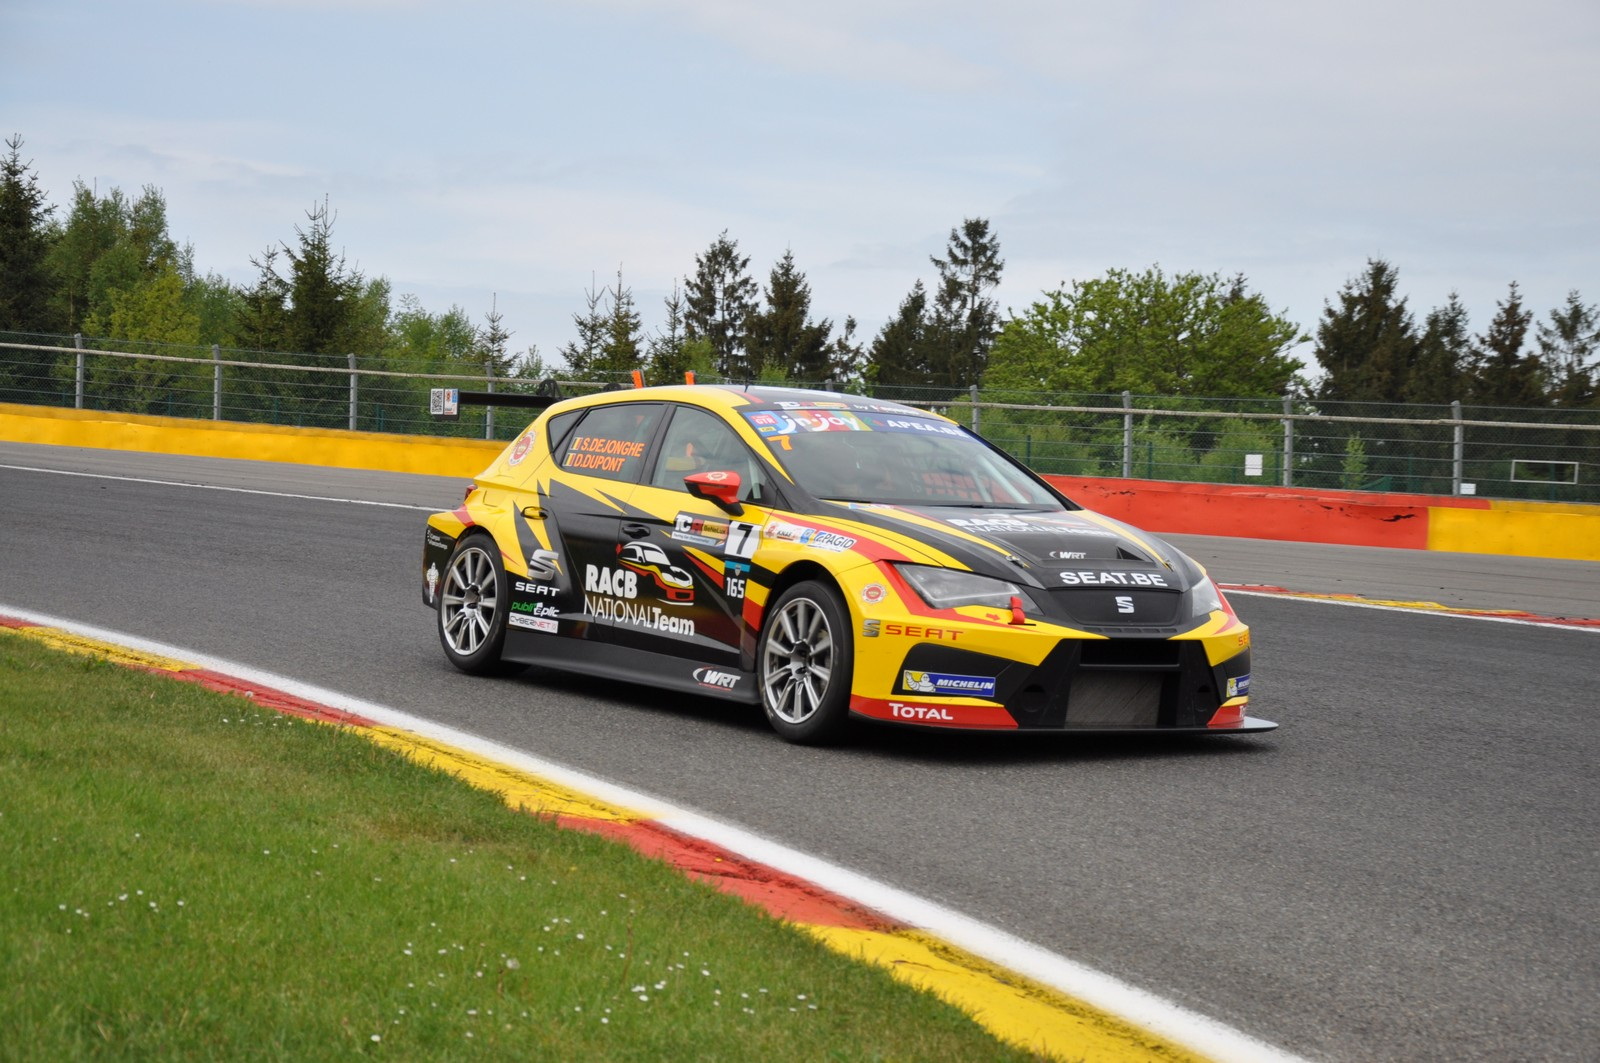 Tcr benelux at curbstone track events in francorchamps for Benelux cars